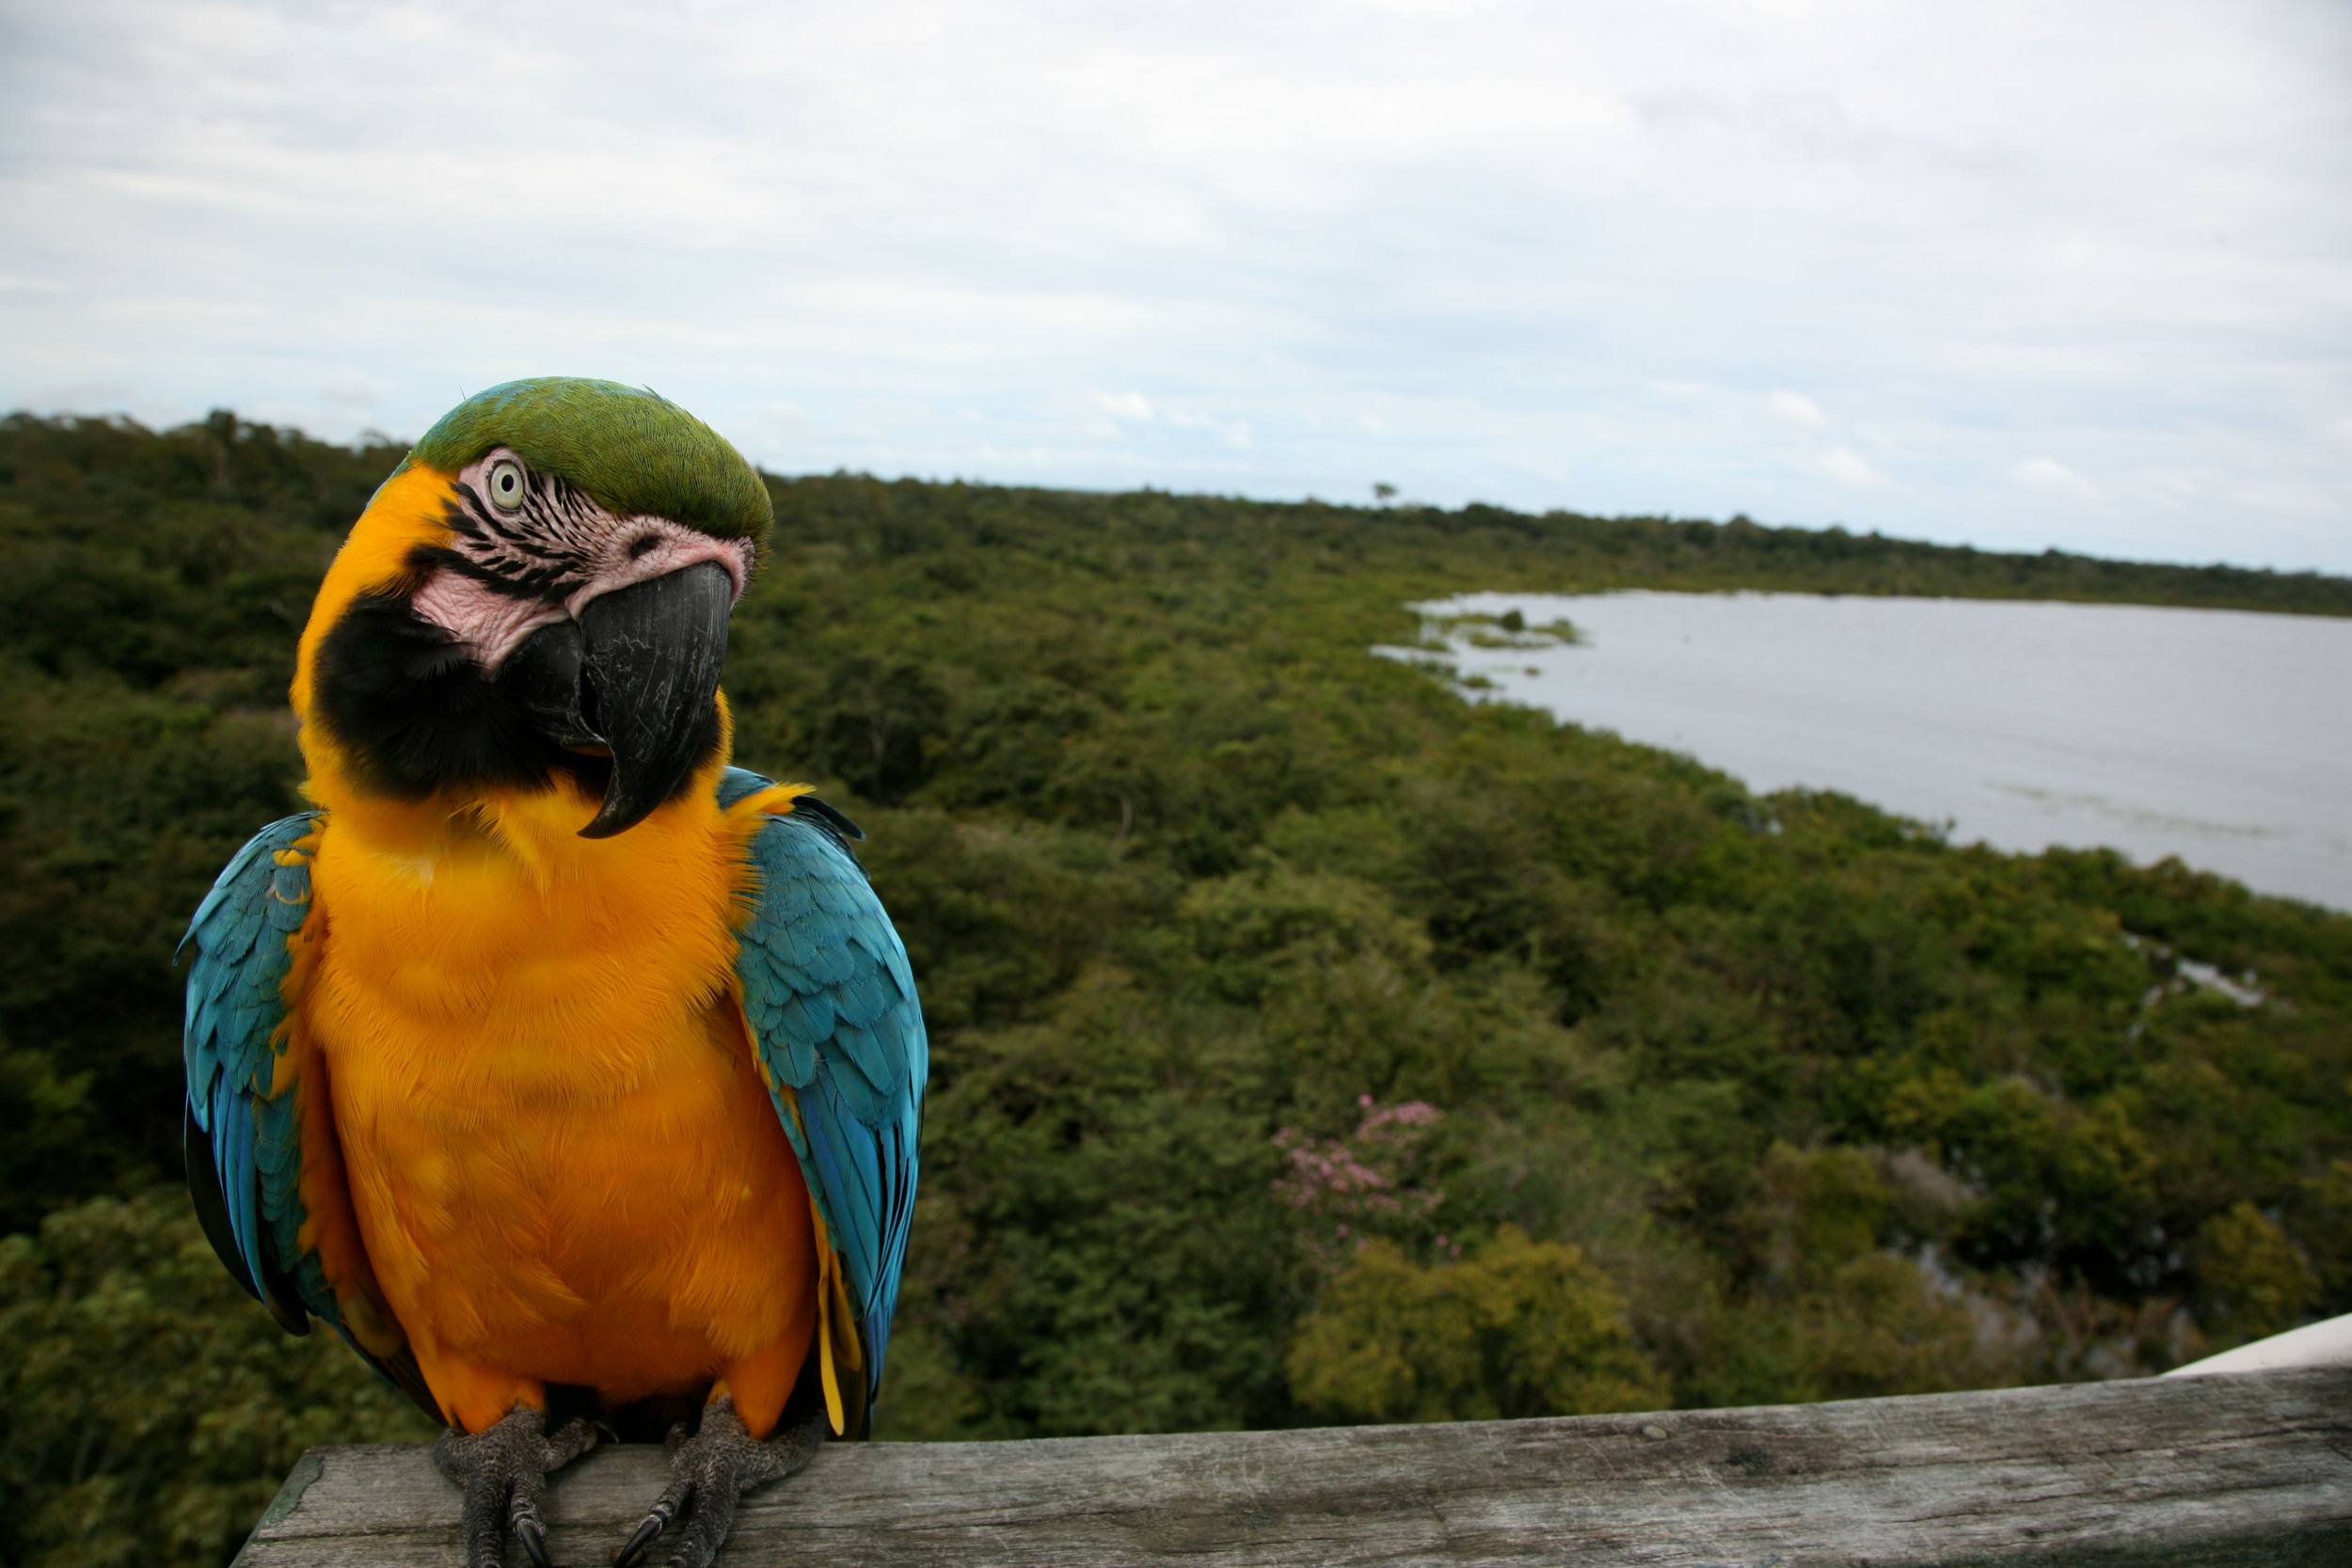 Macaw parrot in front of forest